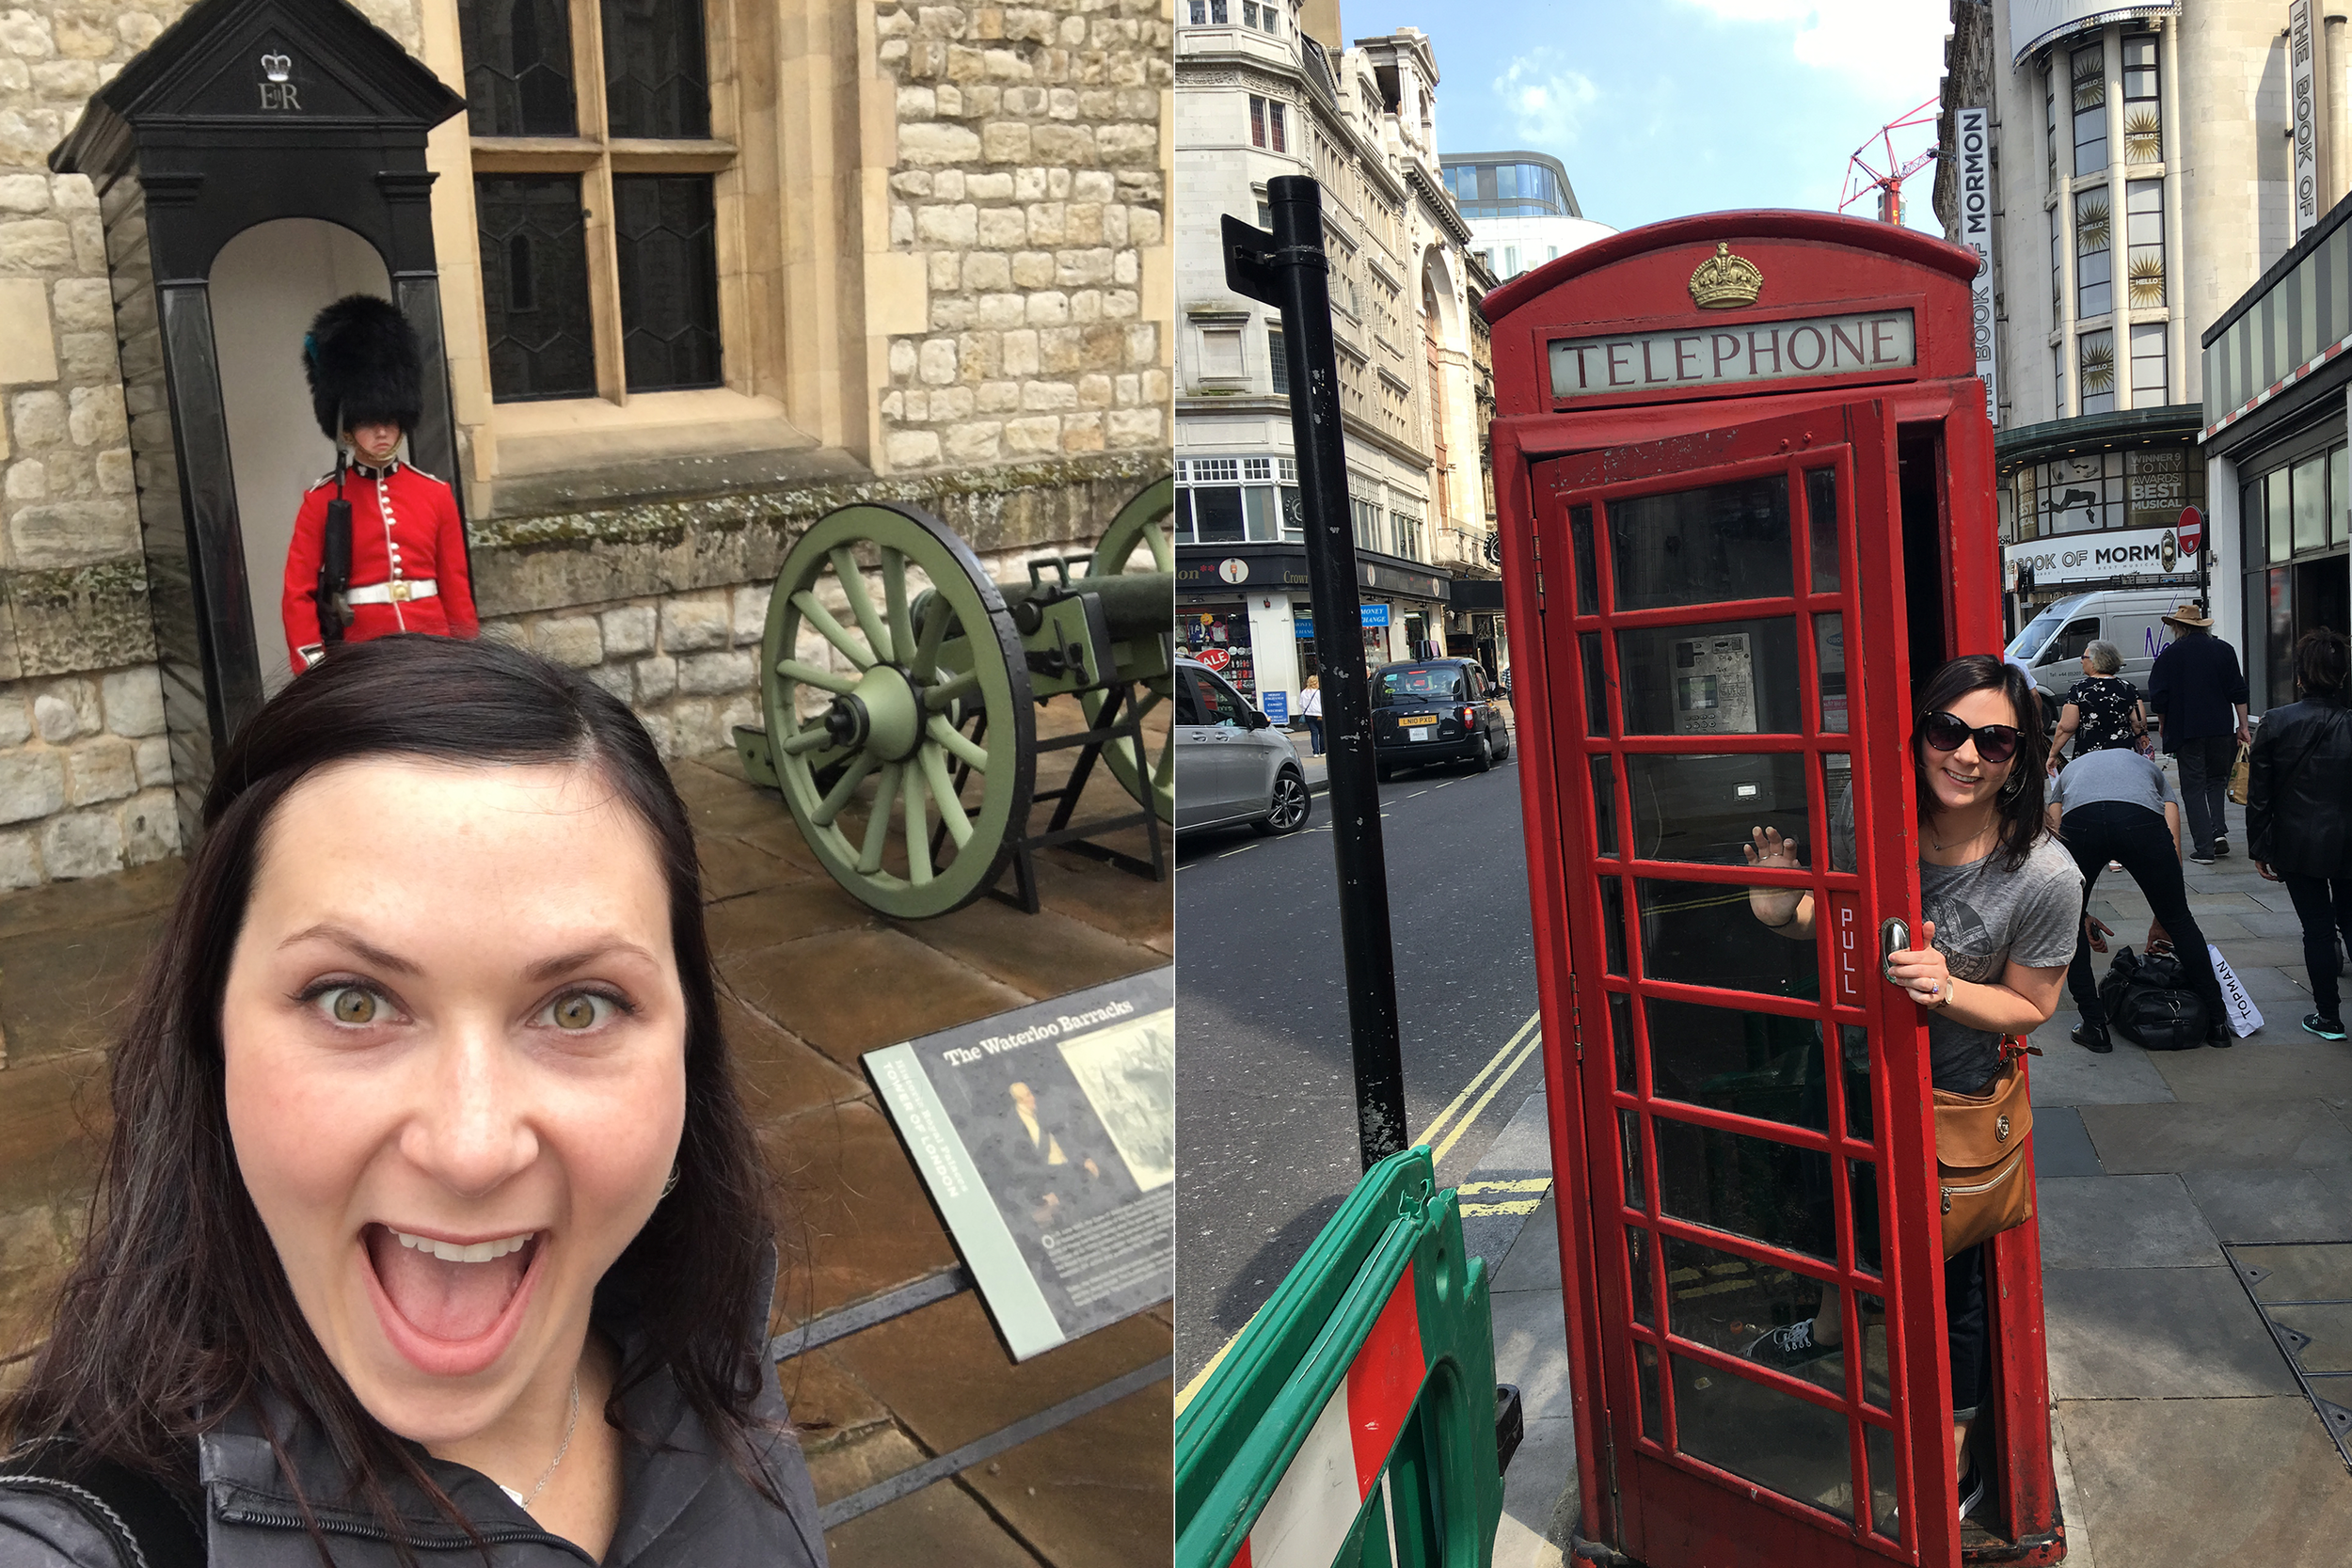 Obligatory selfie and phone booth photo